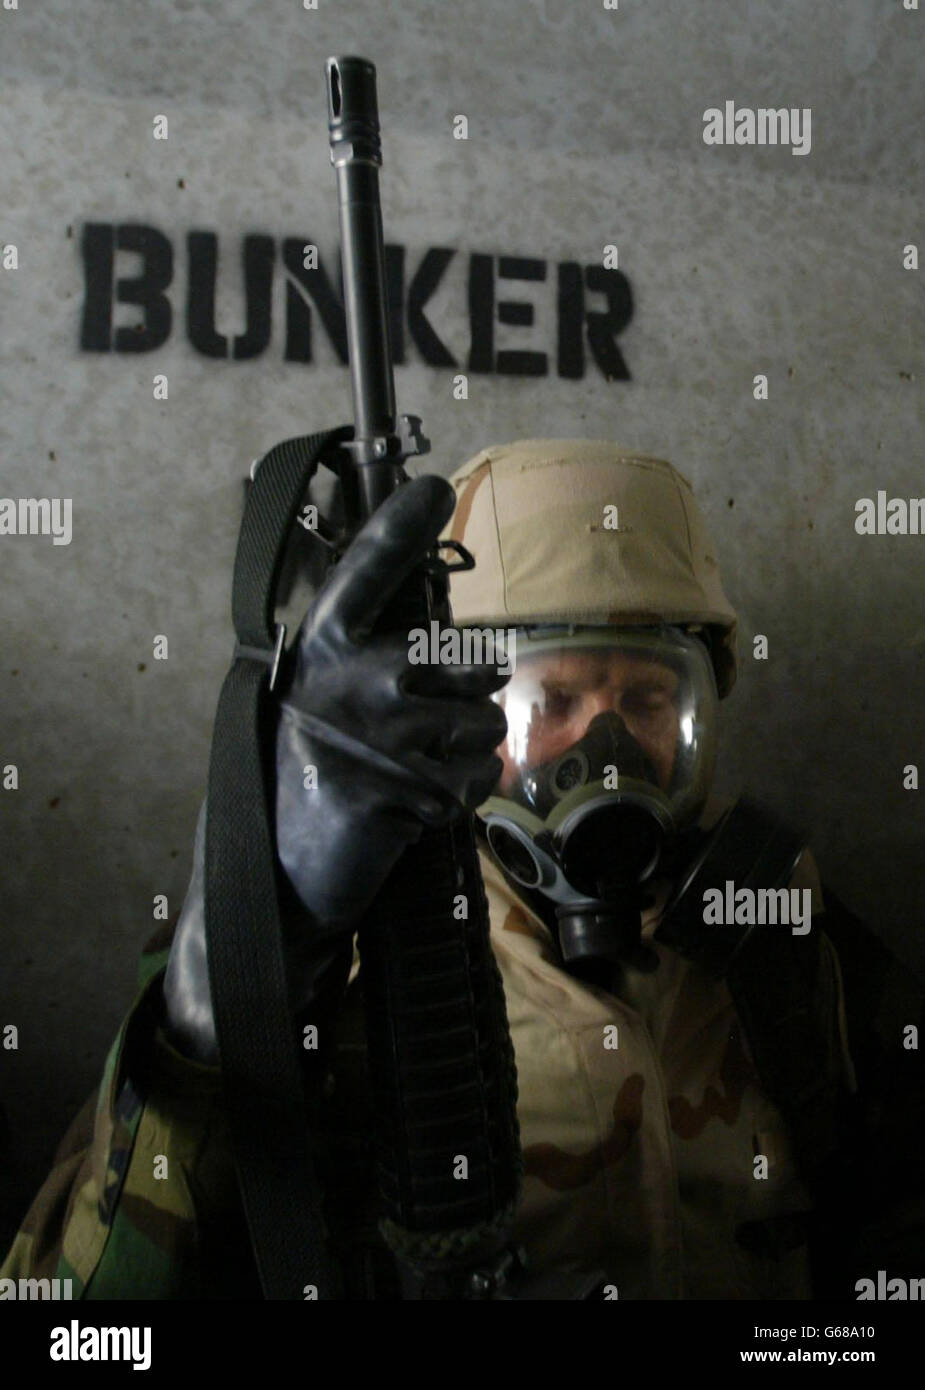 US Marine - Chemical Suit in Kuwait - Stock Image